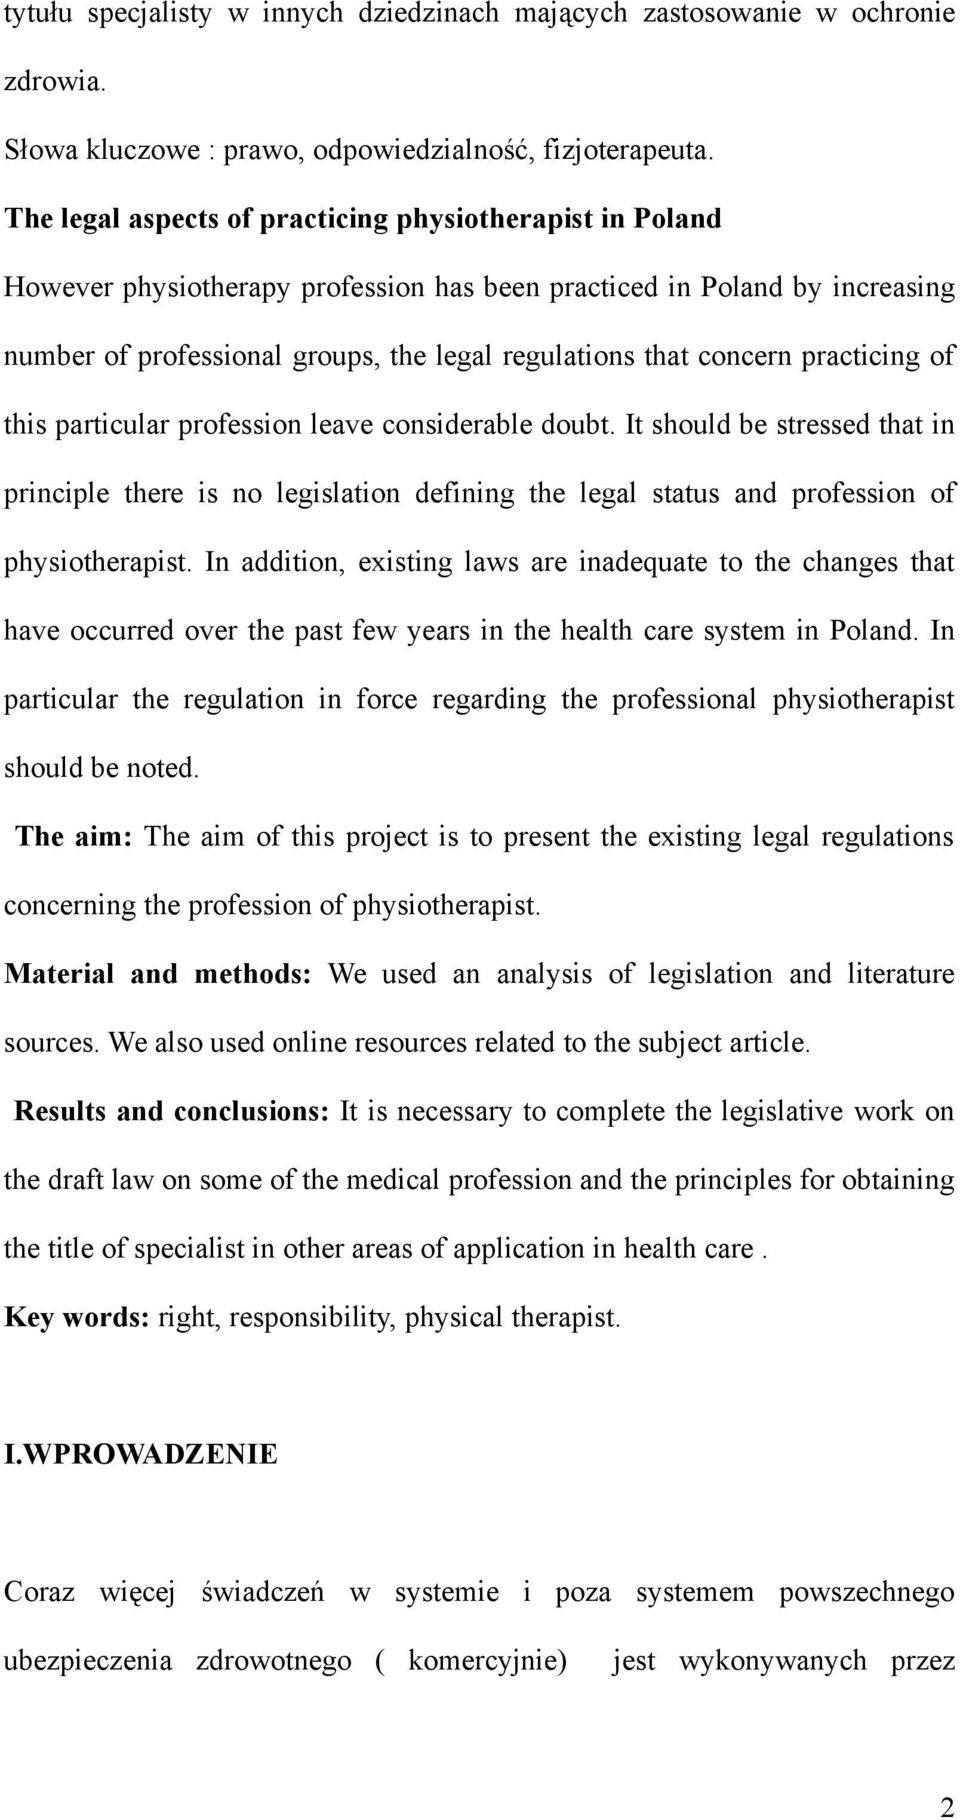 practicing of this particular profession leave considerable doubt. It should be stressed that in principle there is no legislation defining the legal status and profession of physiotherapist.